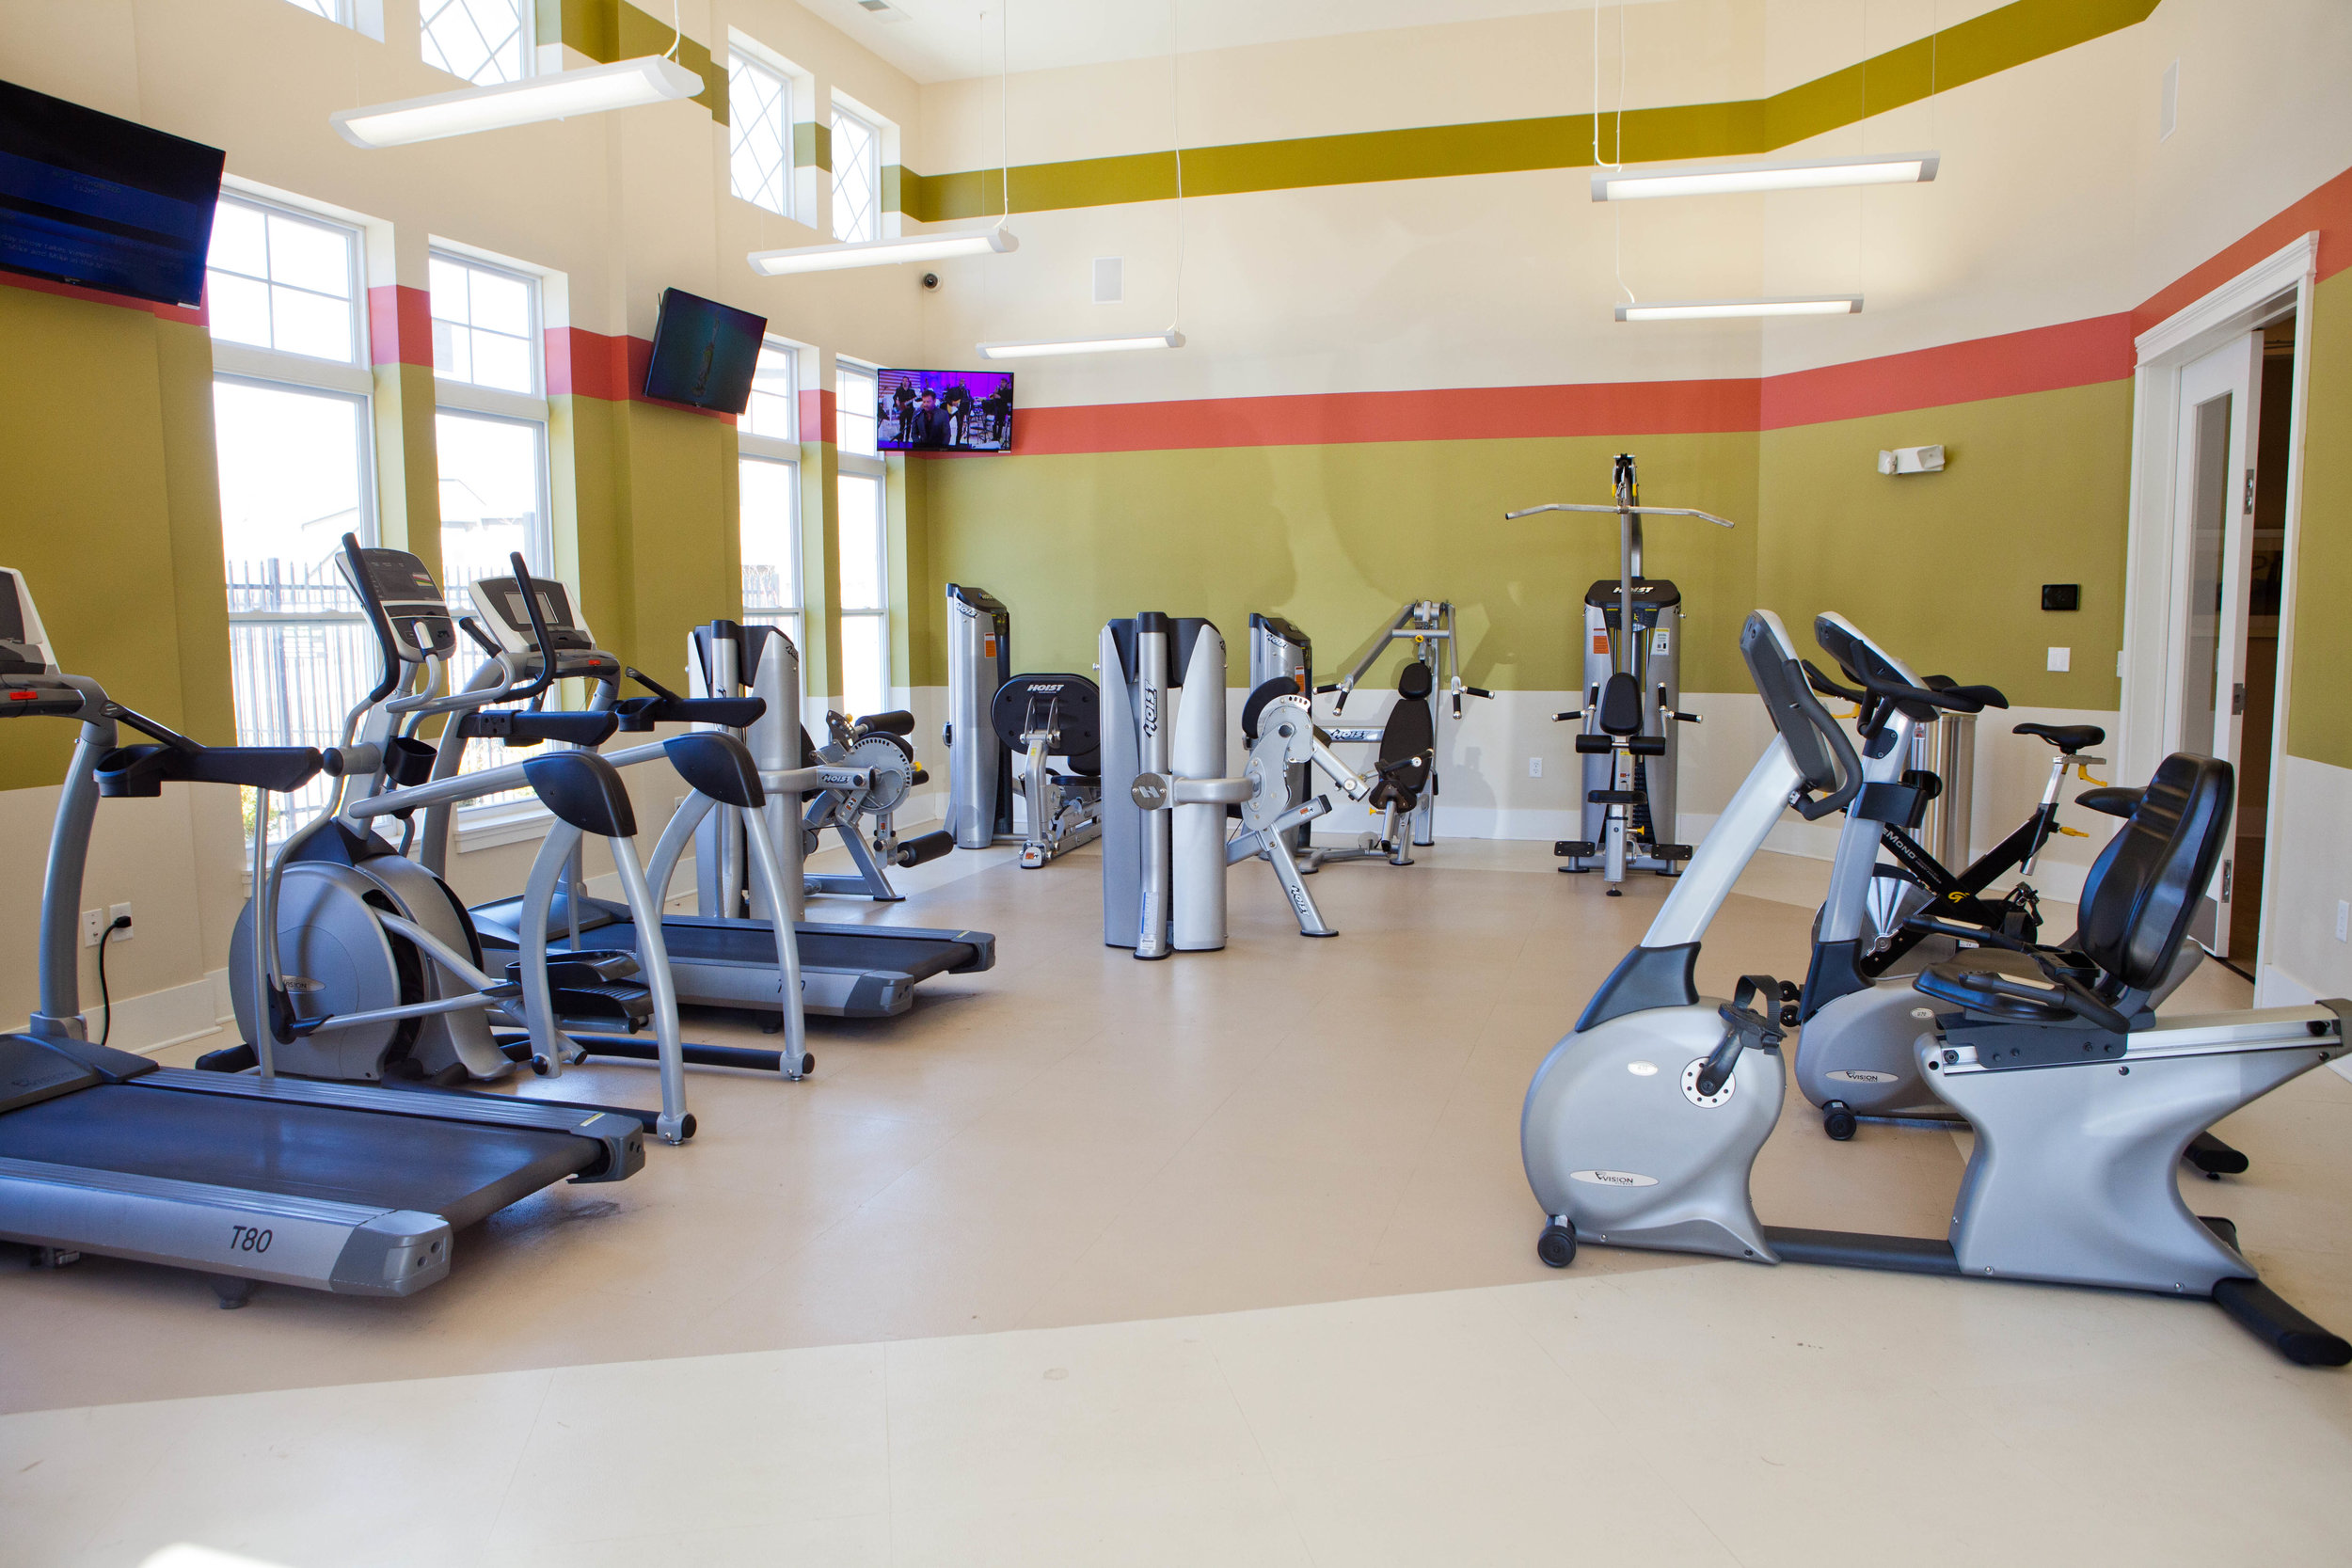 Ivy - workout facility #1 (amenities).JPG